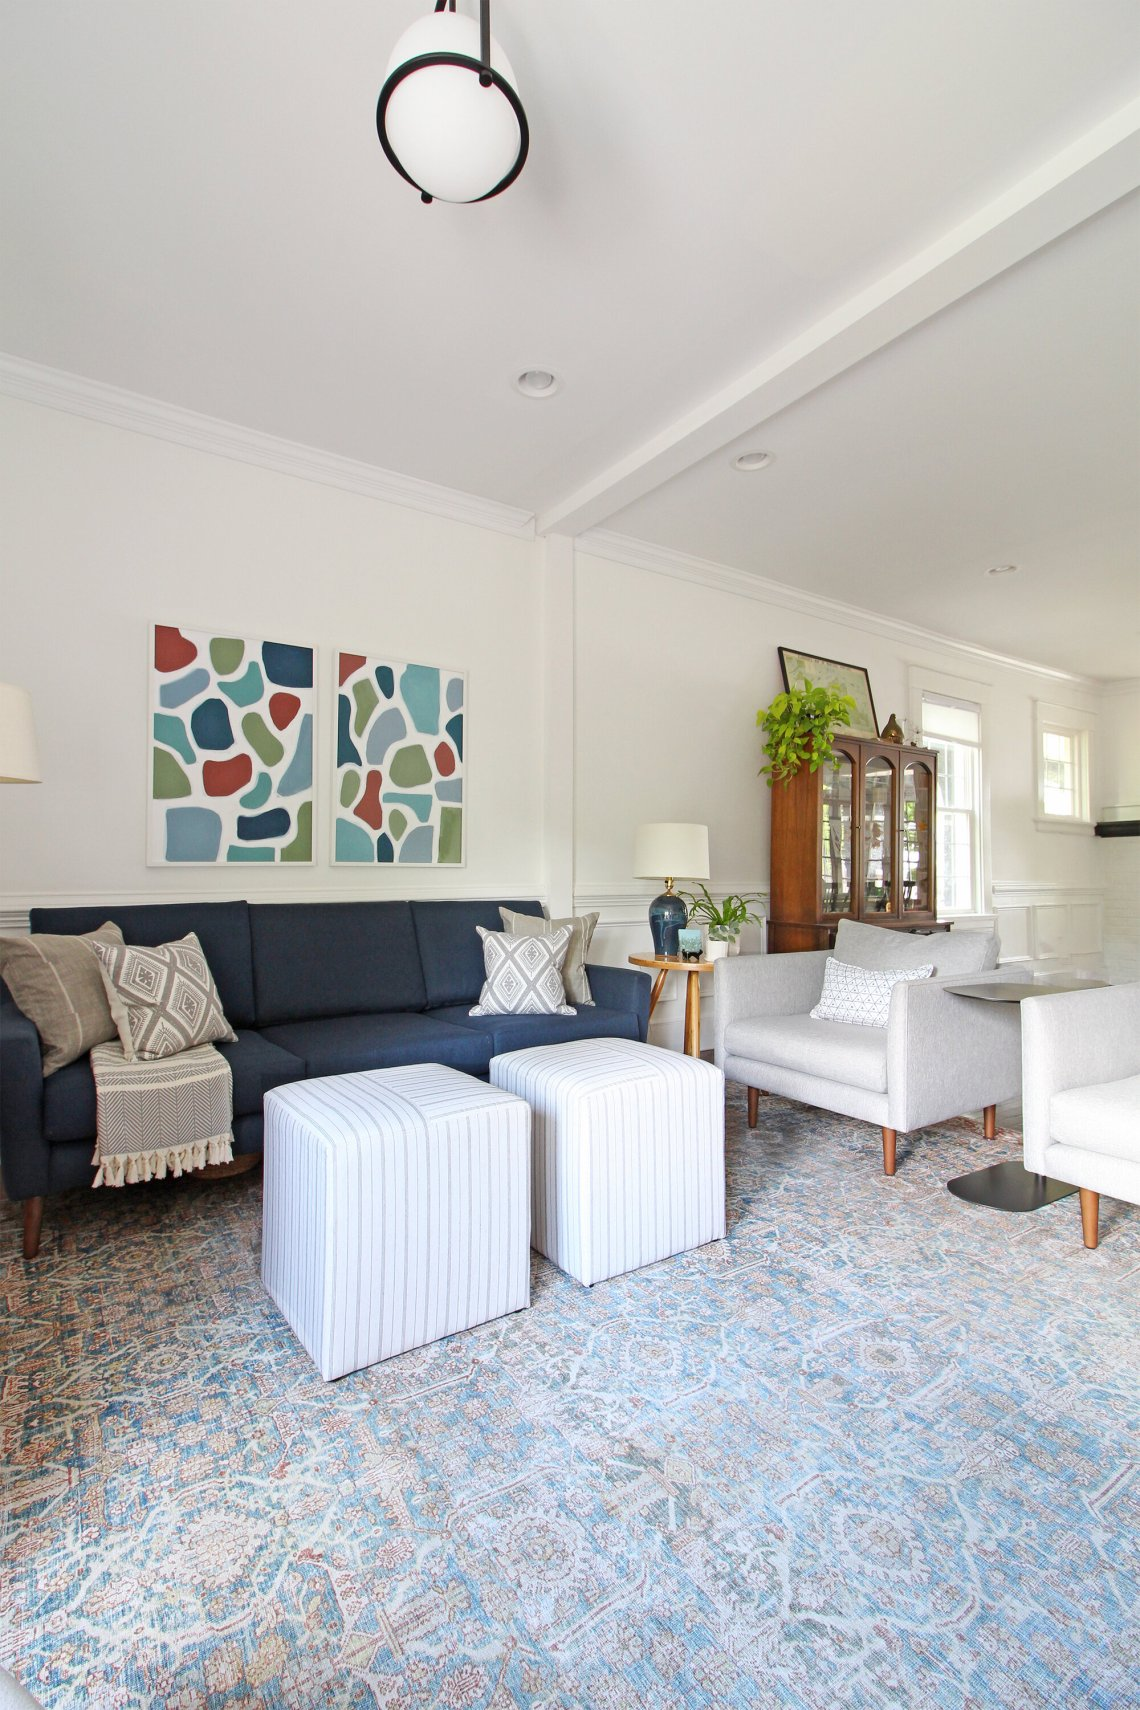 8 Kid Friendly Design Tips For Your Living Room